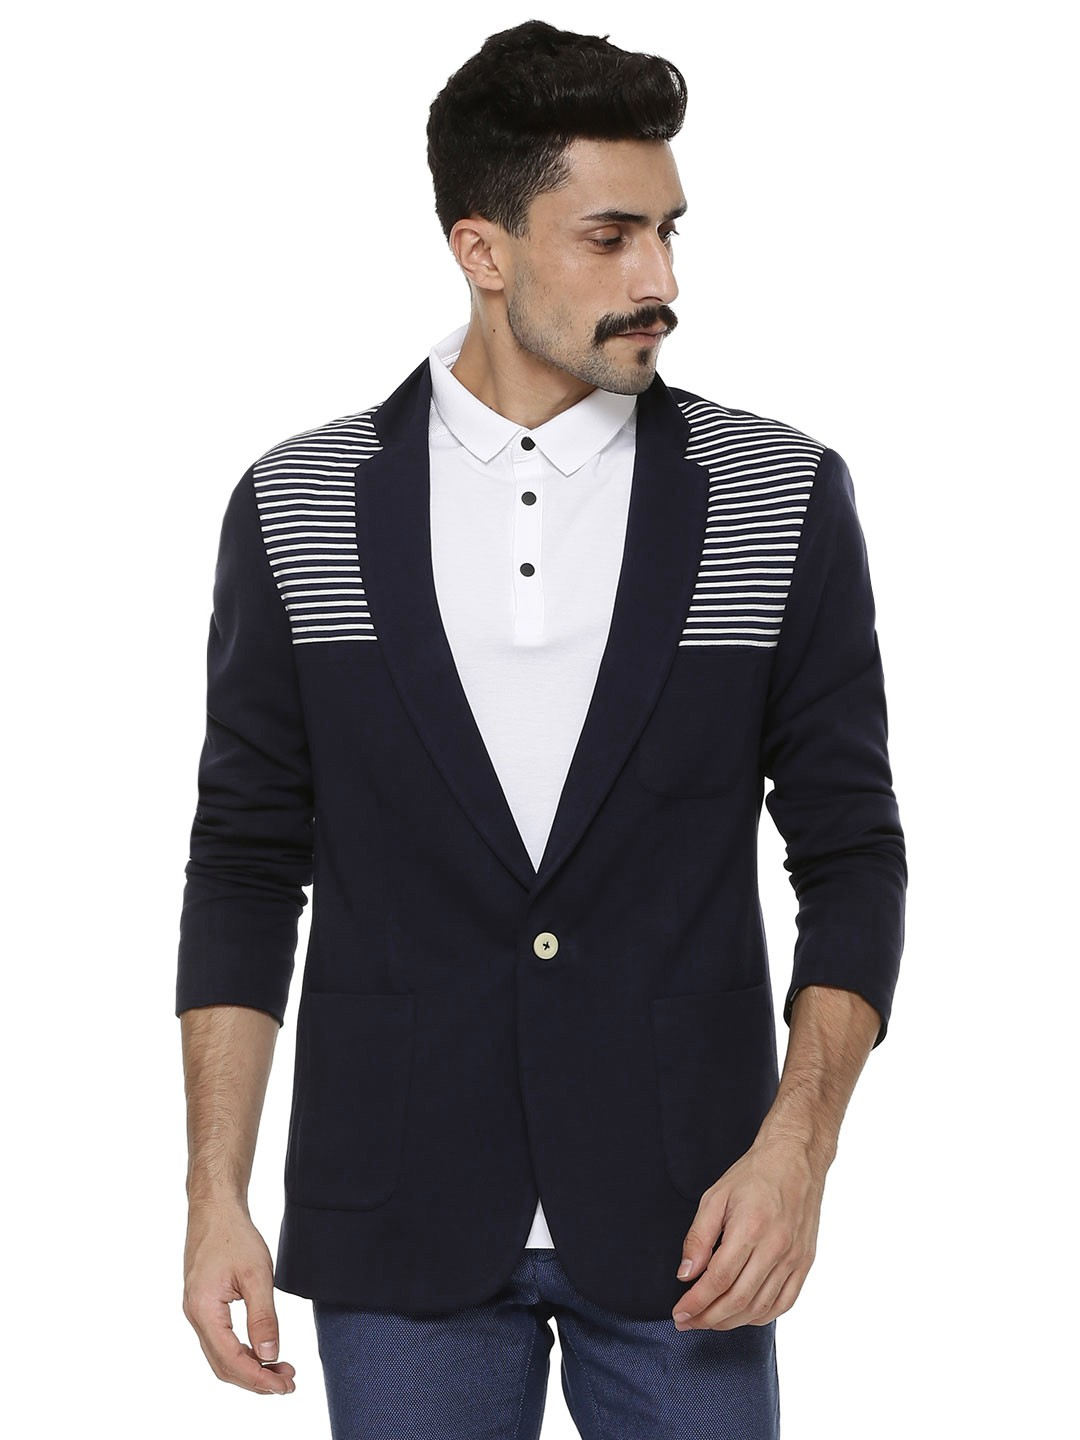 Buy Raymond apparels, accessories and unstitched fabric for shirt and trouser online. Shop across various collections from Raymond Brand Shirts, T-Shirts, Trousers, Dresses, Footwear and more at exploreblogirvd.gq